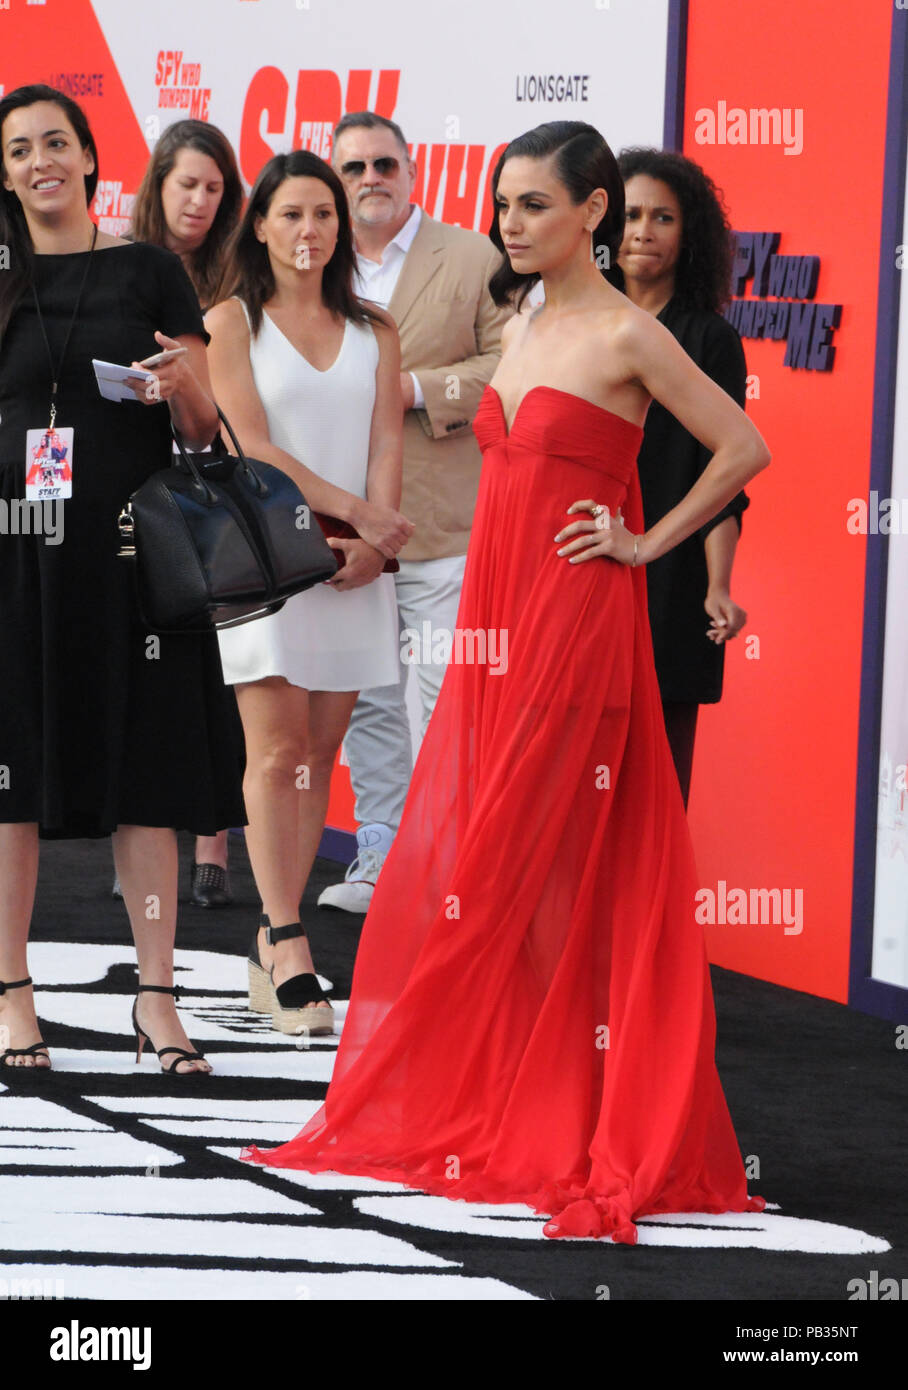 Los Angeles, California, USA. 25th July, 2018. Actress Mila Kunis attends the World Premiere of Lionsgate's' 'The Spy Who Dumped Me' on July 25, 2018 at Fox Village Theatre in Los Angeles, California. Photo by Barry King/Alamy Live News - Stock Image